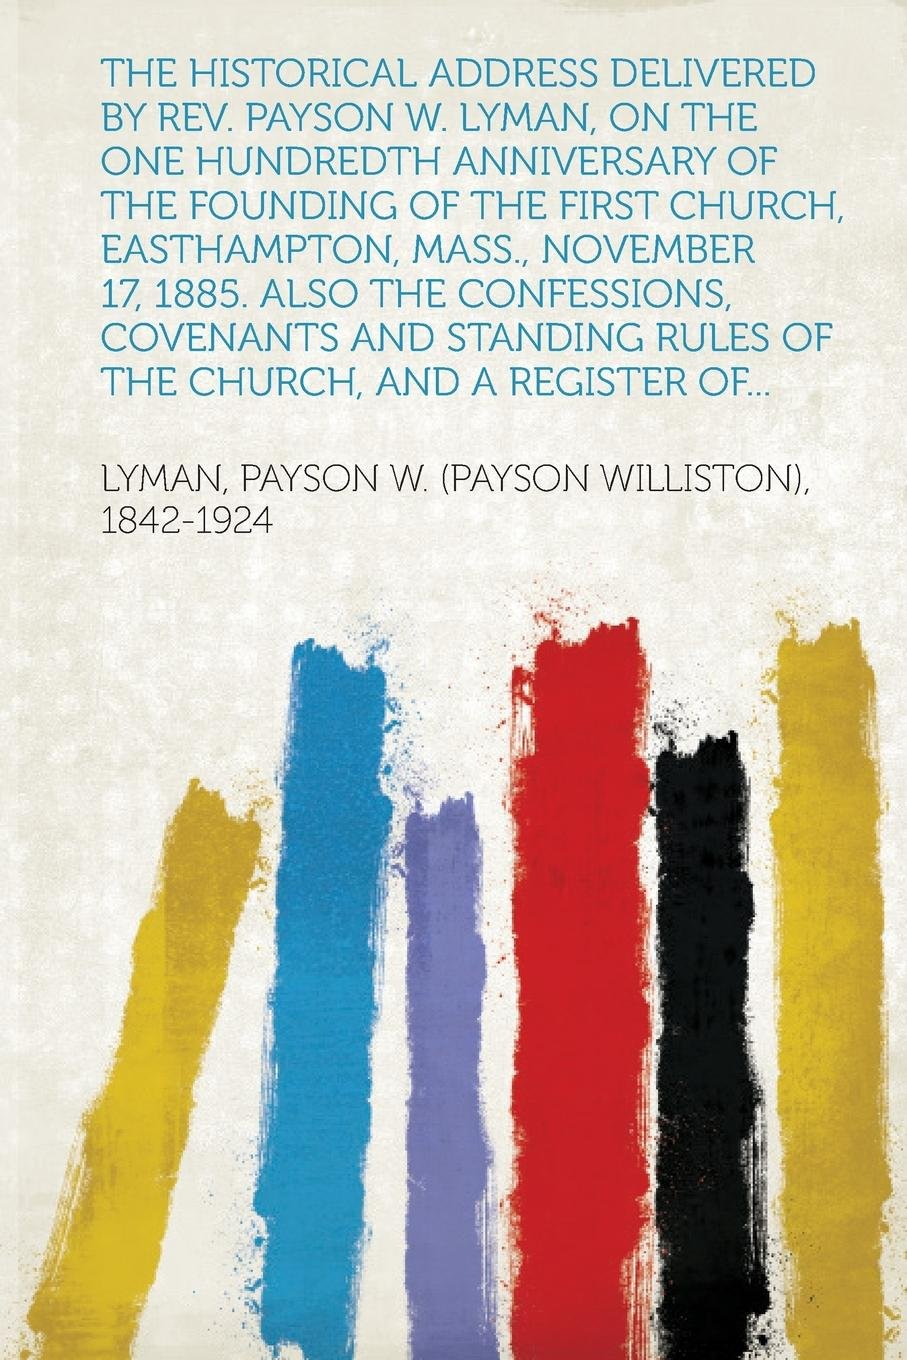 The Historical Address Delivered by REV. Payson W. Lyman, on the One Hundredth Anniversary of the Founding of the First Church, Easthampton, Mass., No pdf epub